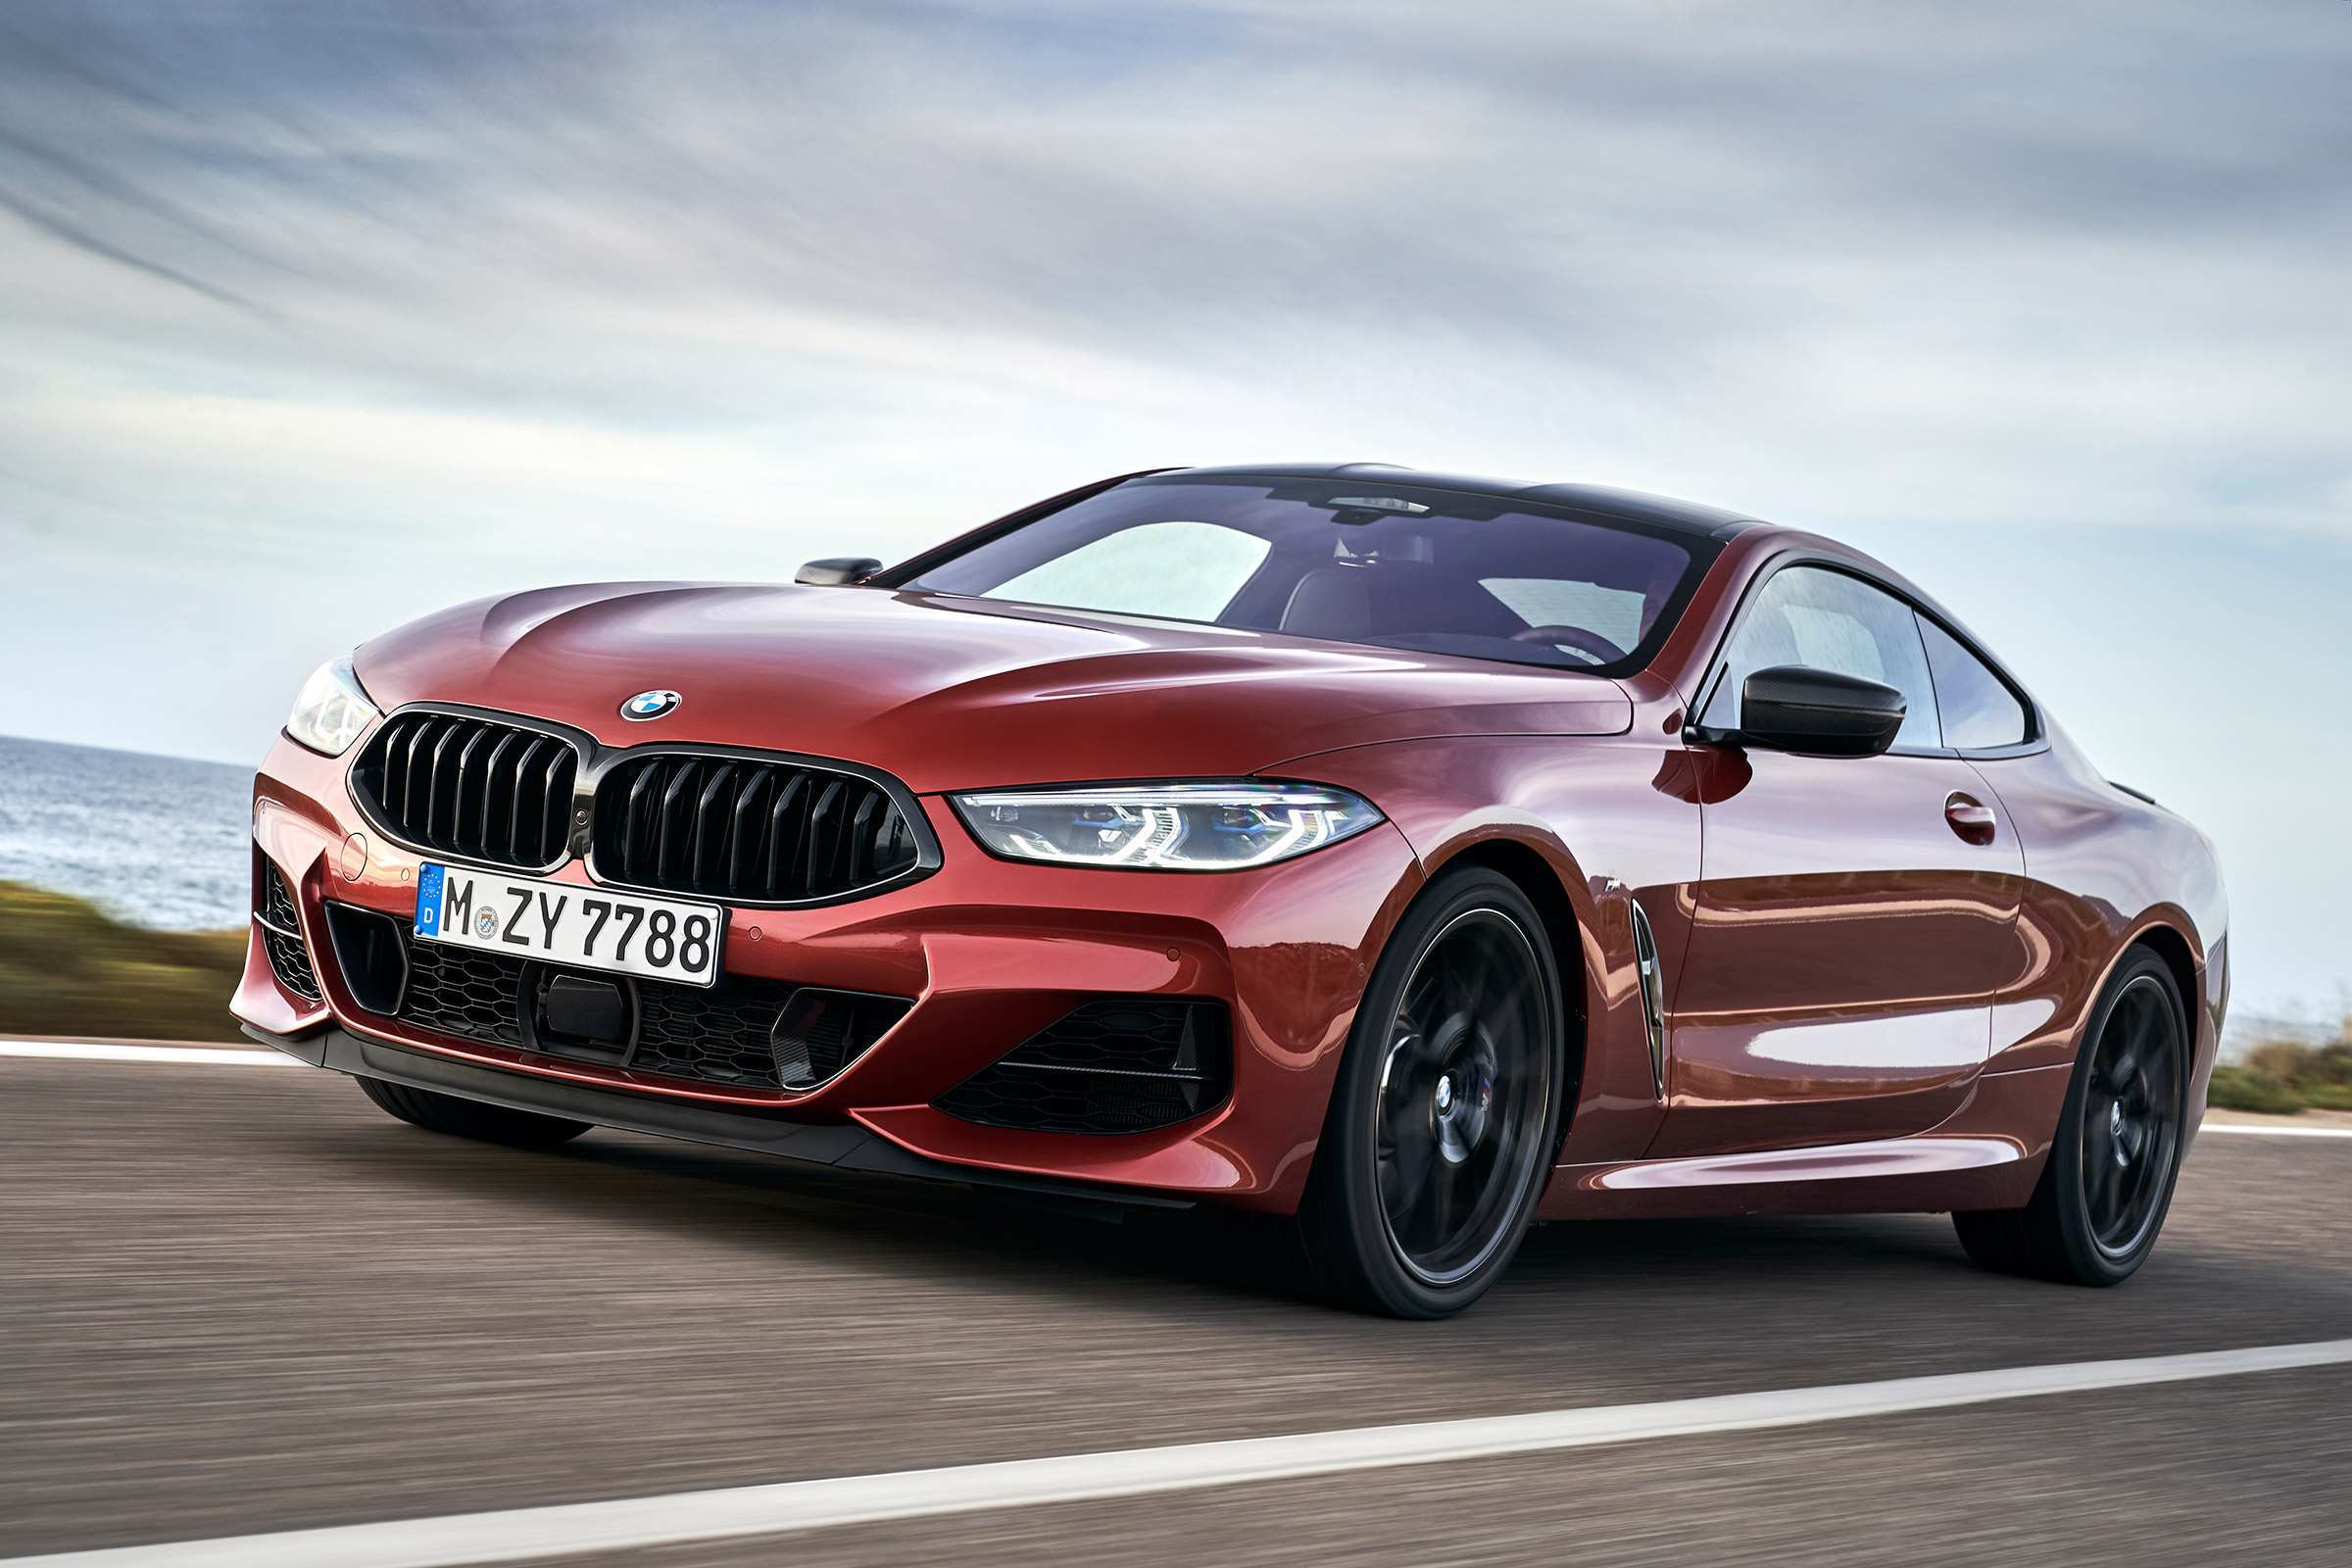 76 The 2019 8 Series Bmw Concept And Review